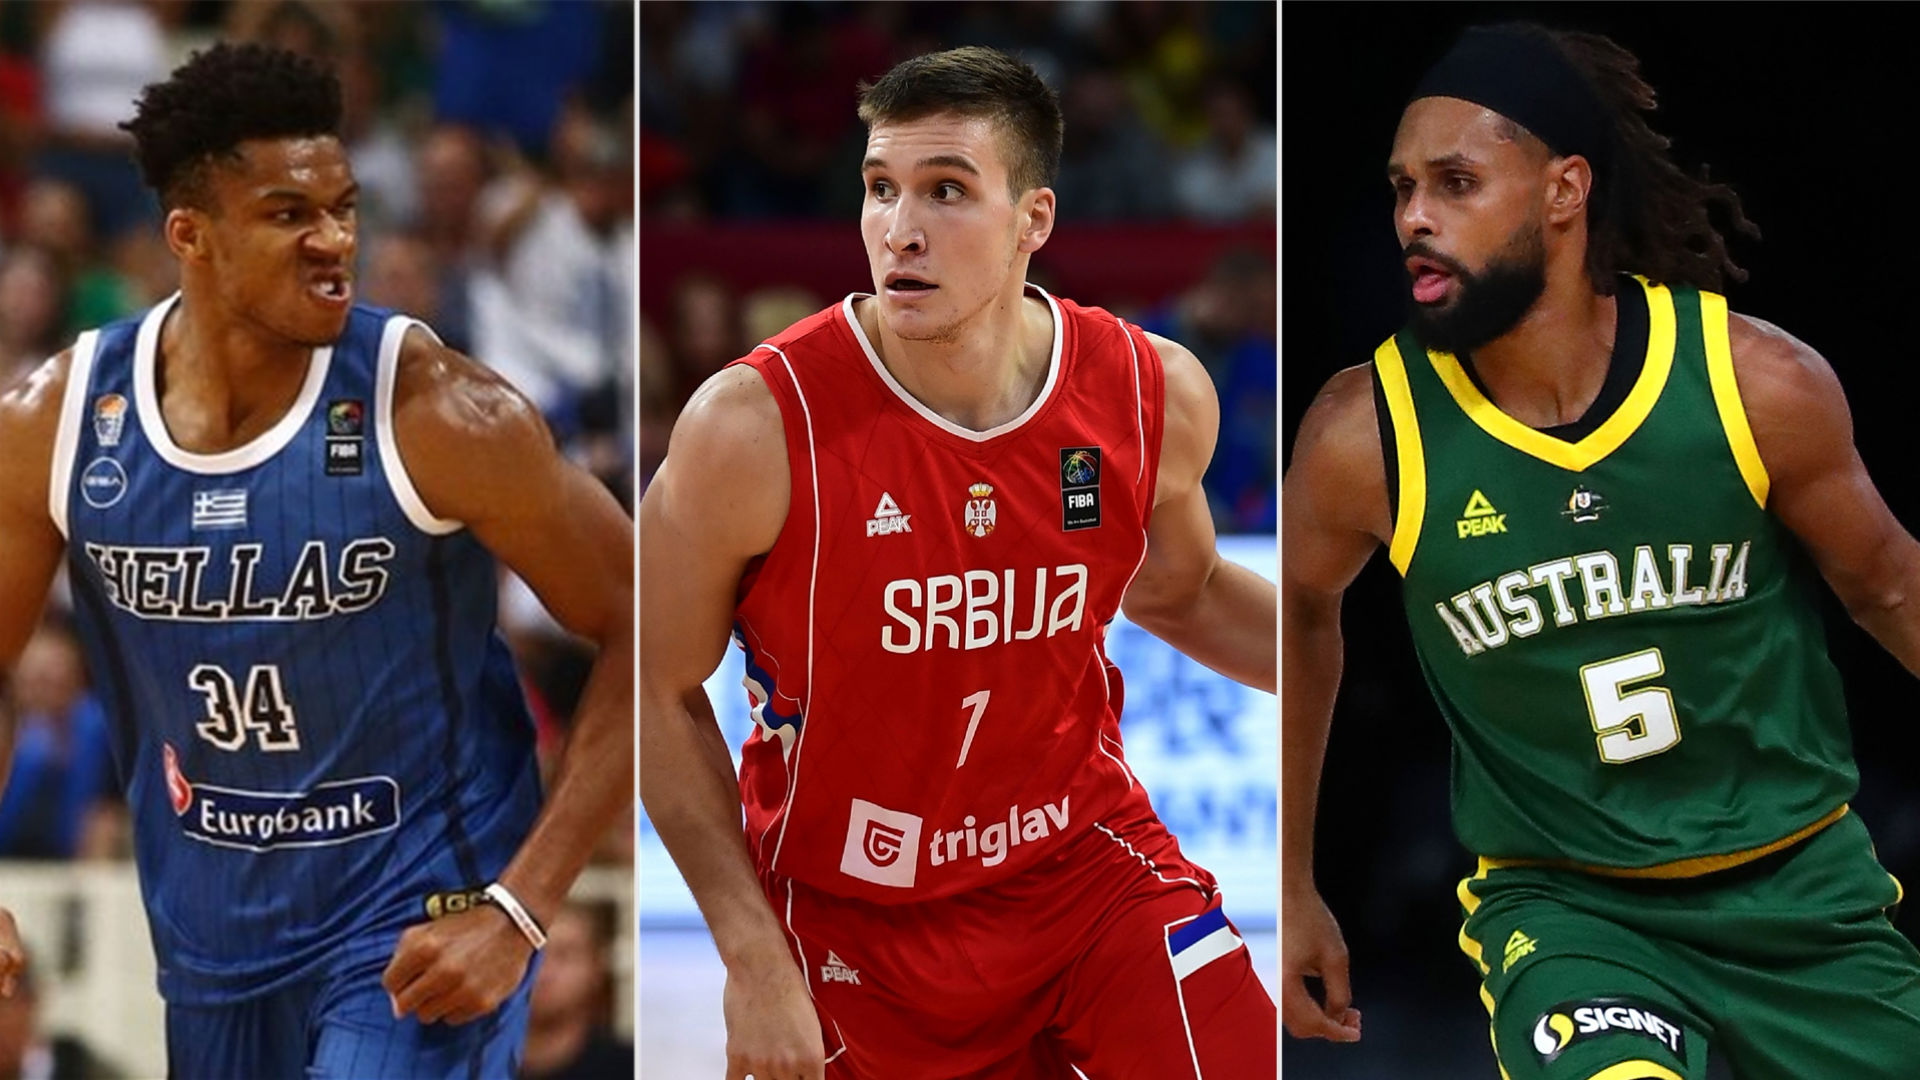 FIBA World Cup 2019: Who will be the tournament's scoring leader? | NBA.com Canada | The official site of the NBA